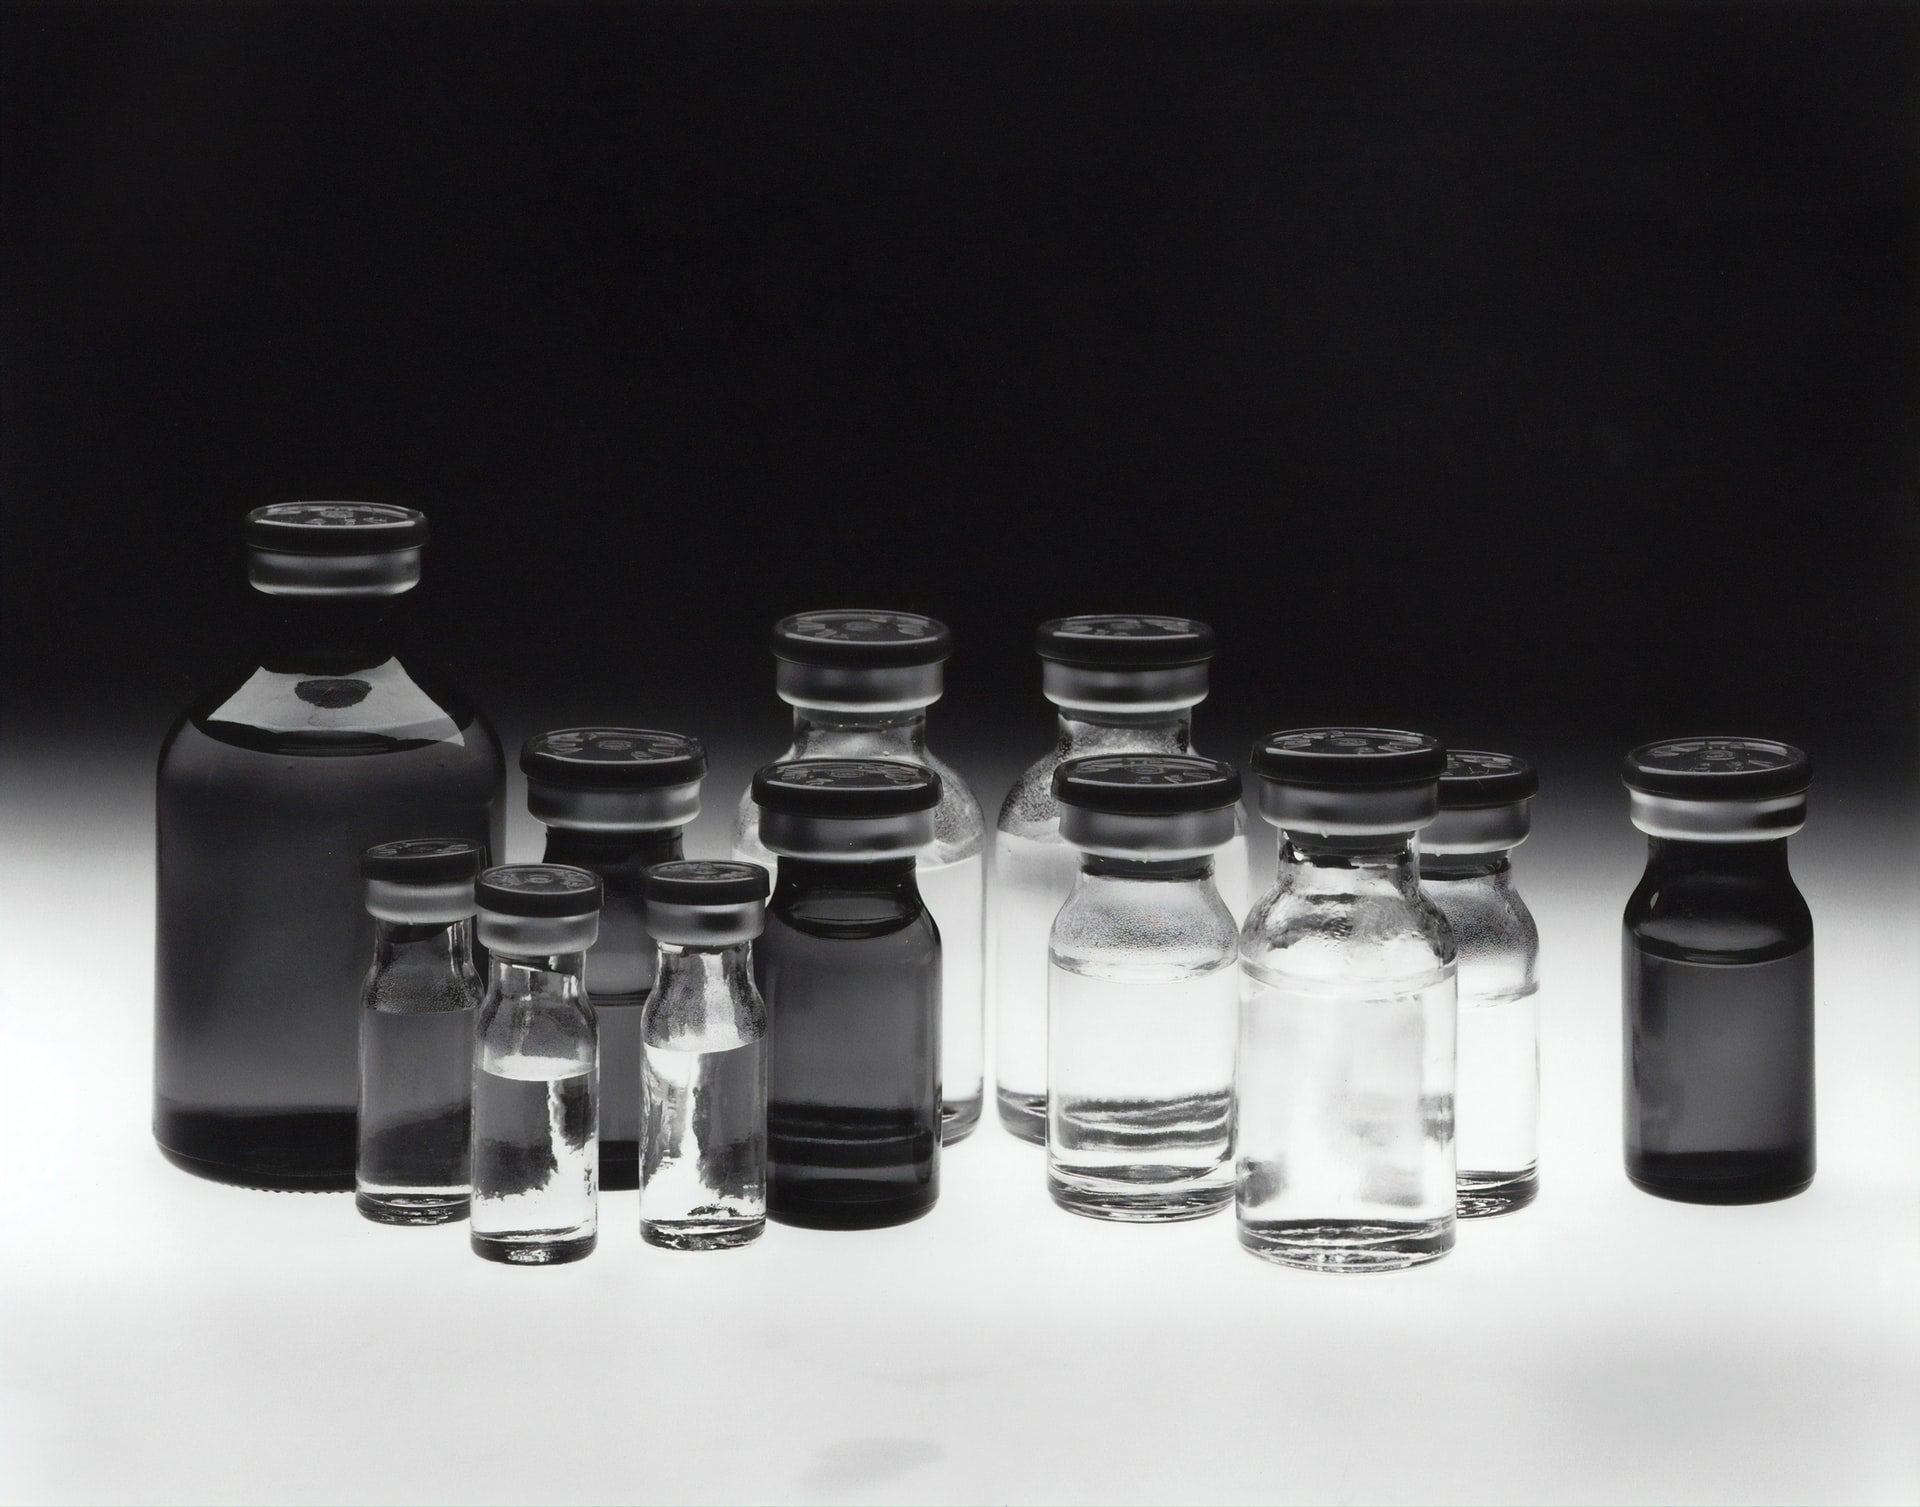 Chemotherapy-drug bottles in black and white